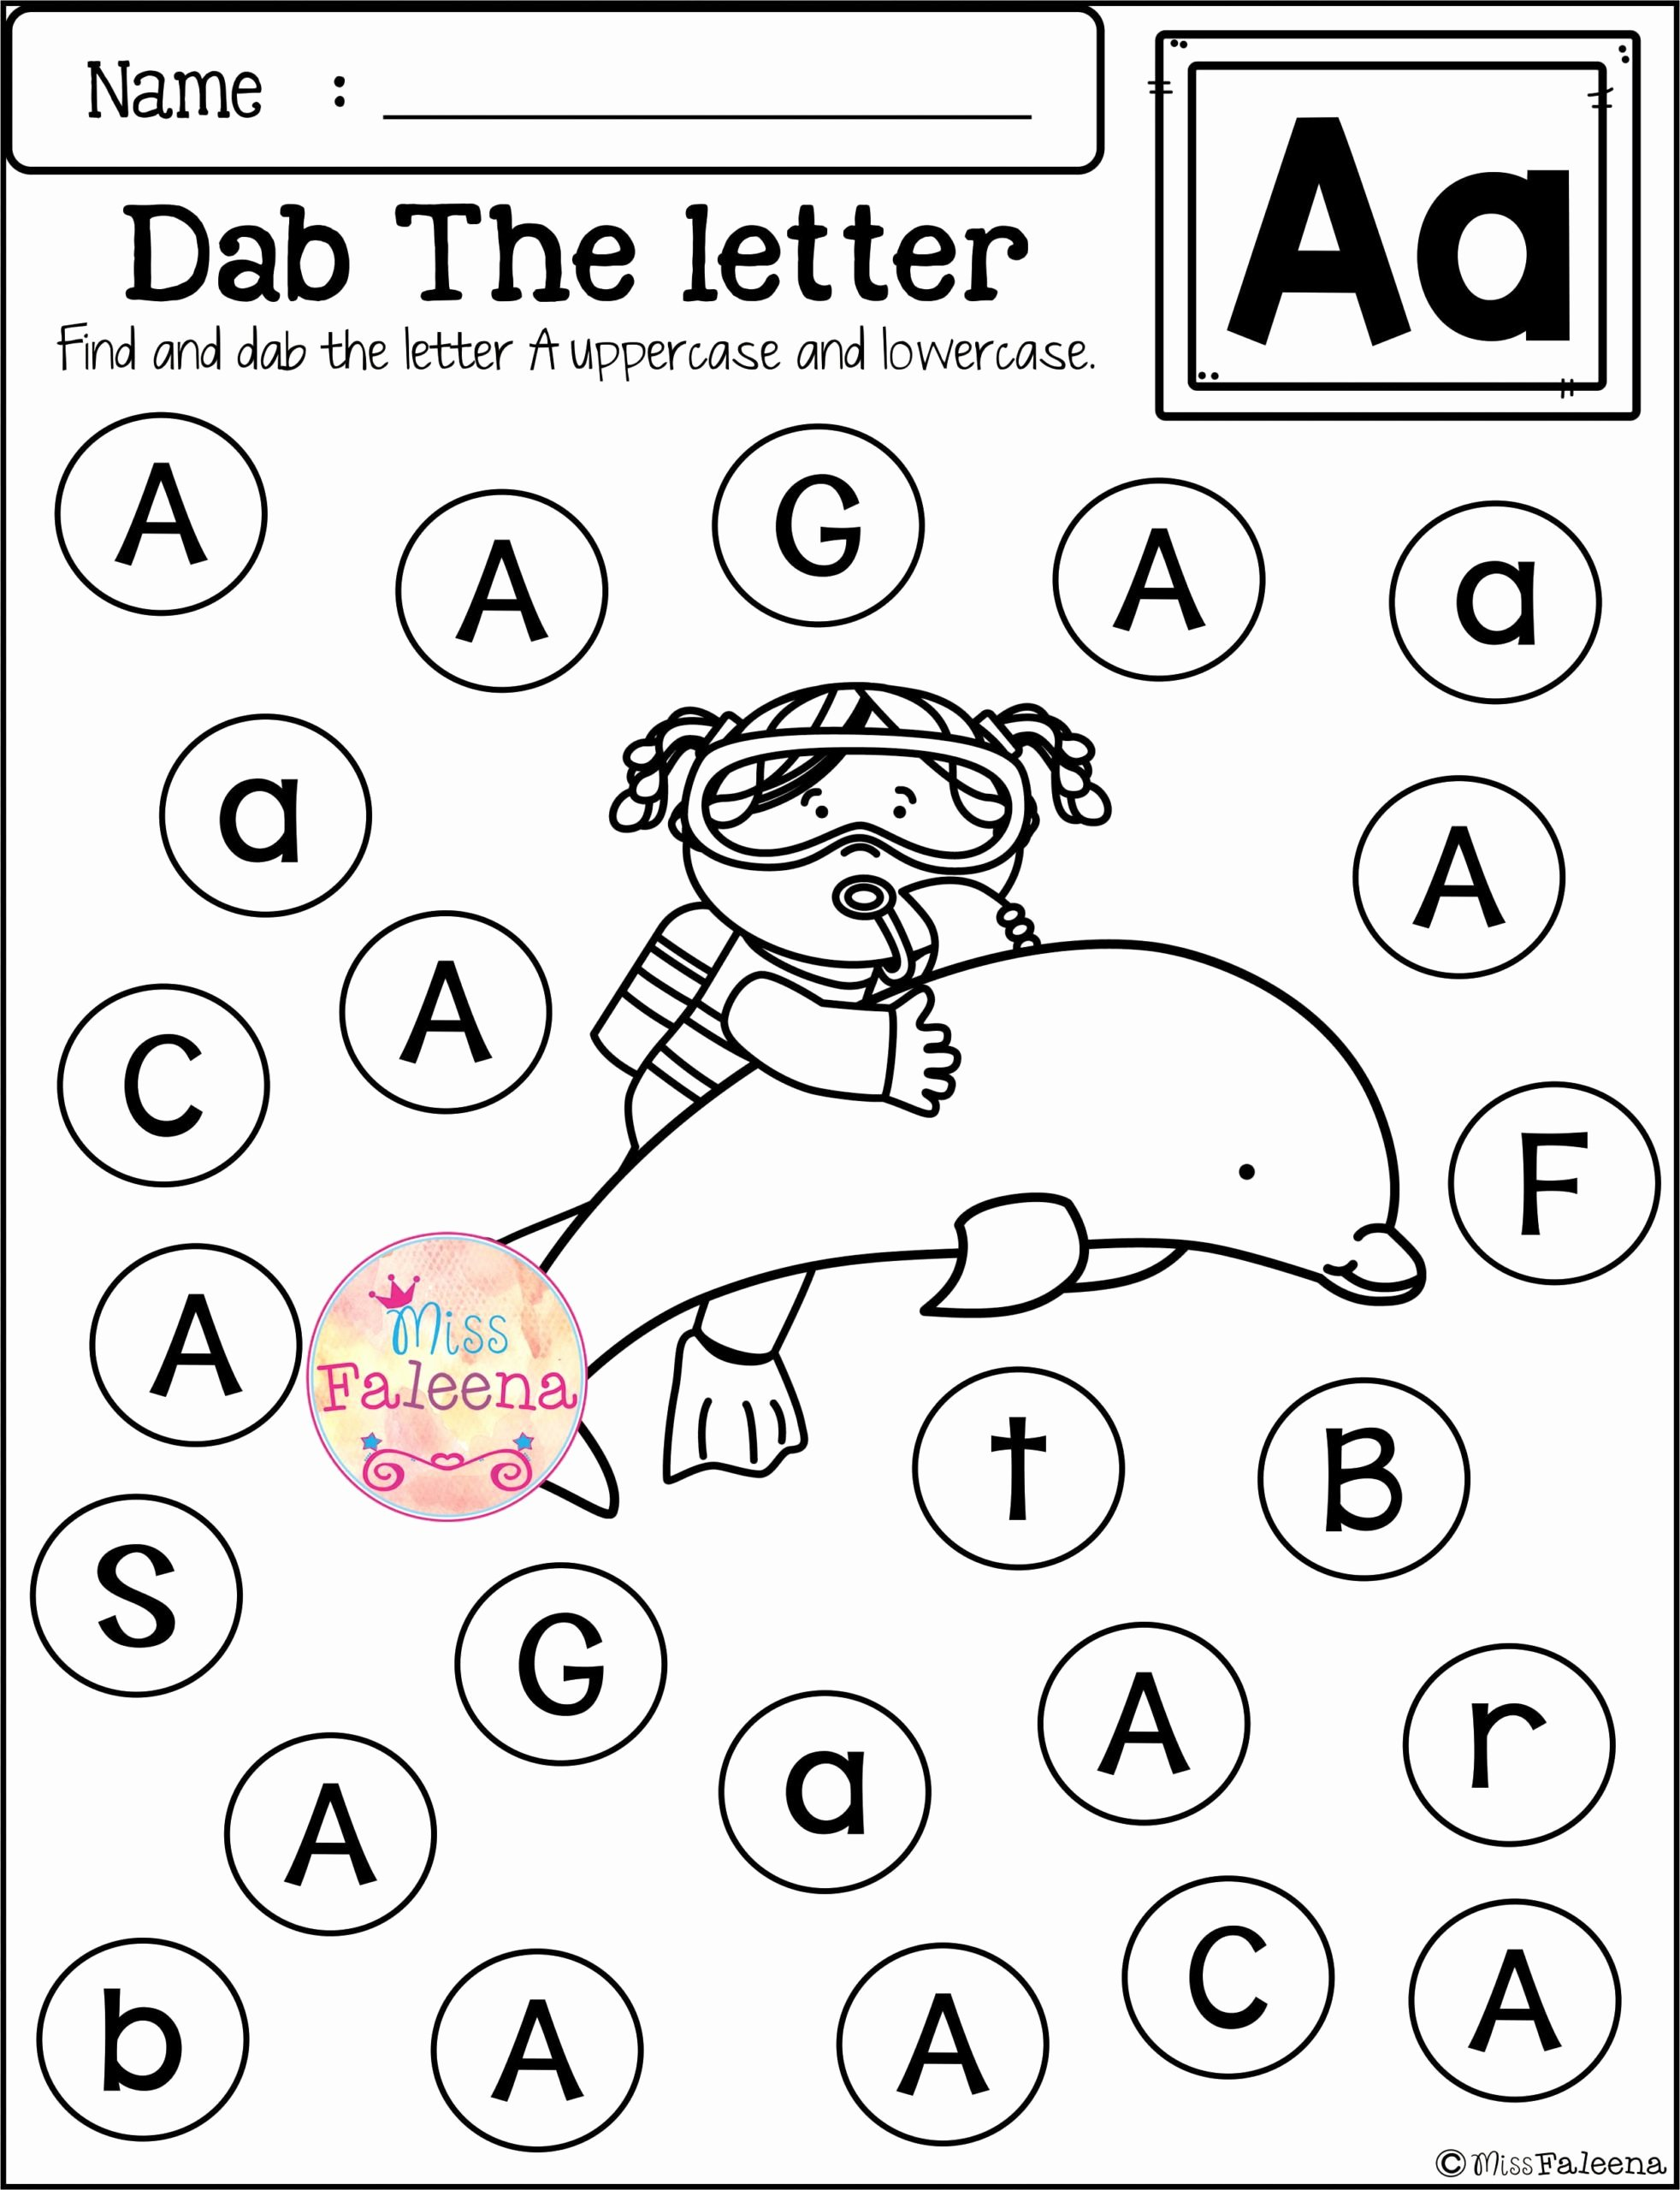 Reading Readiness Worksheets for Preschoolers Awesome Math Worksheet Math Worksheet Kindergarten Worksheets